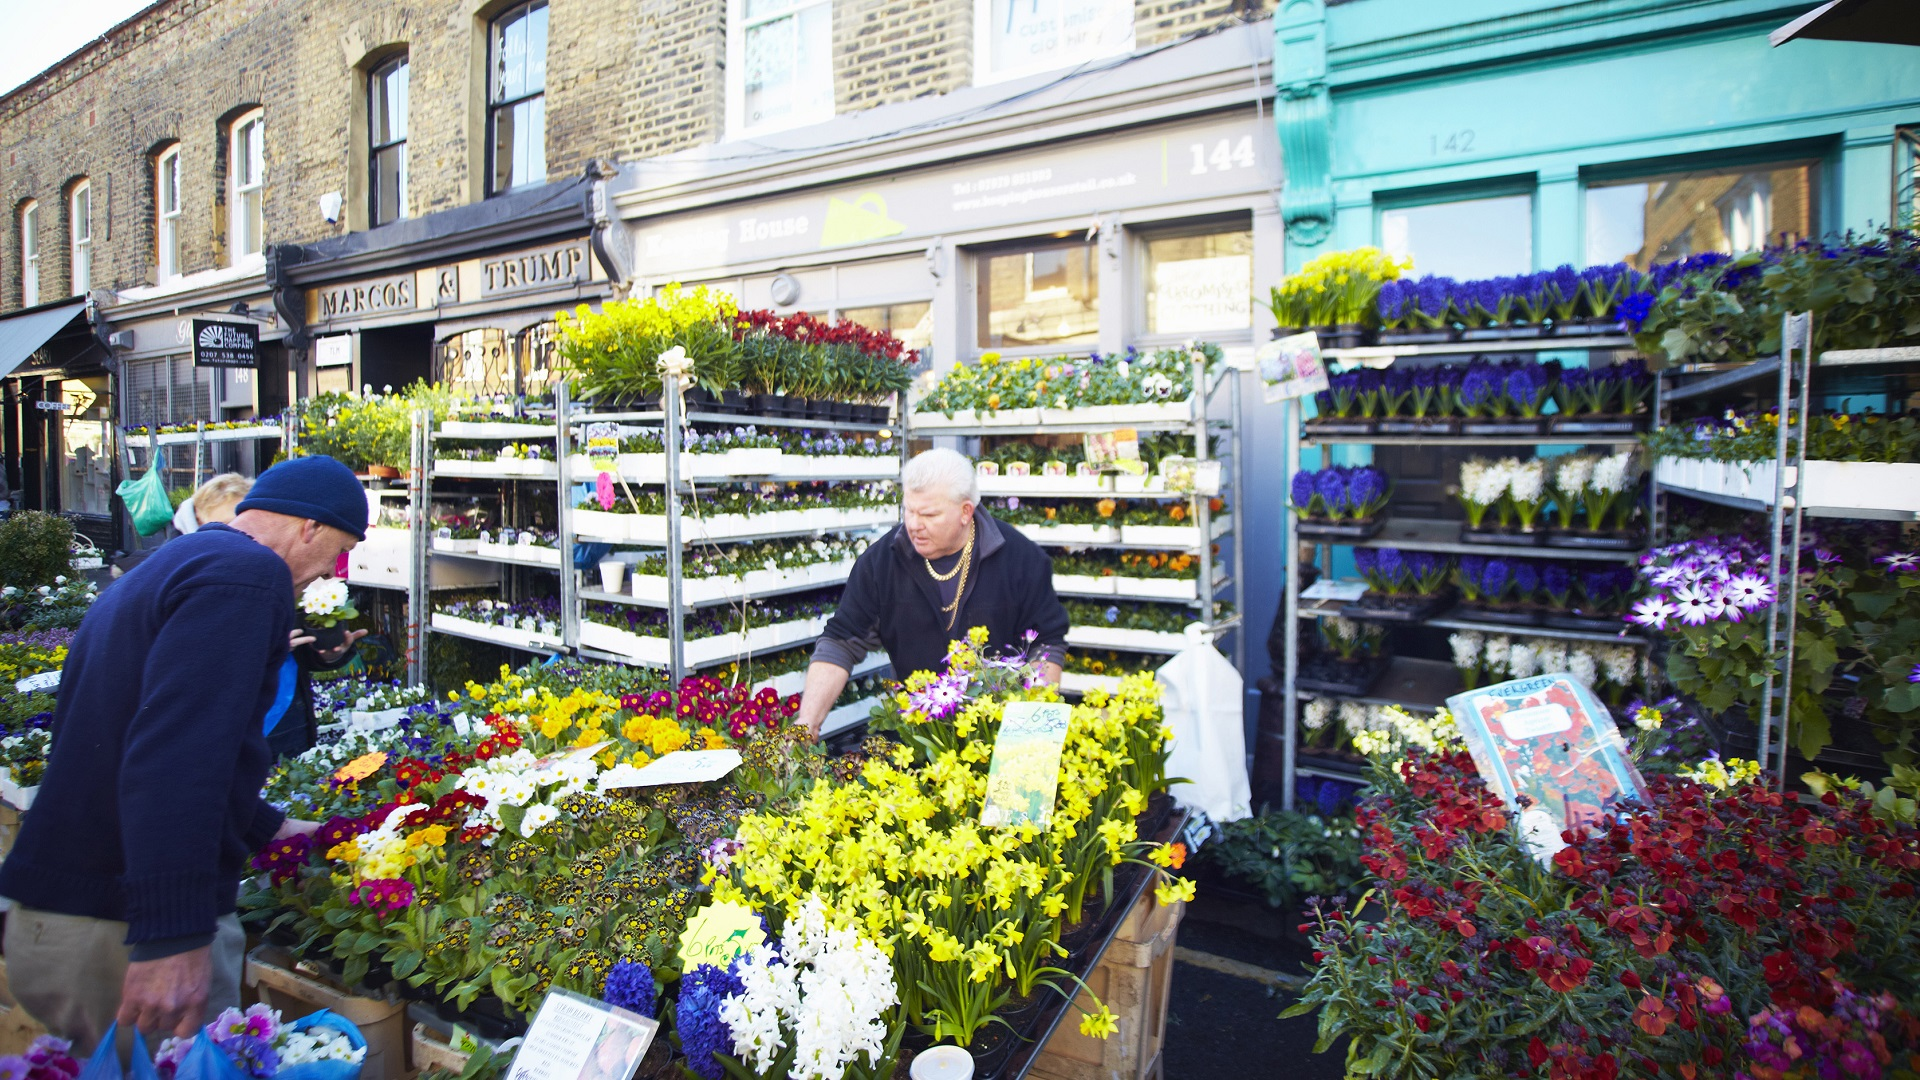 Market seller surrounded by daffodils and other plants at Columbia Road Flower Market